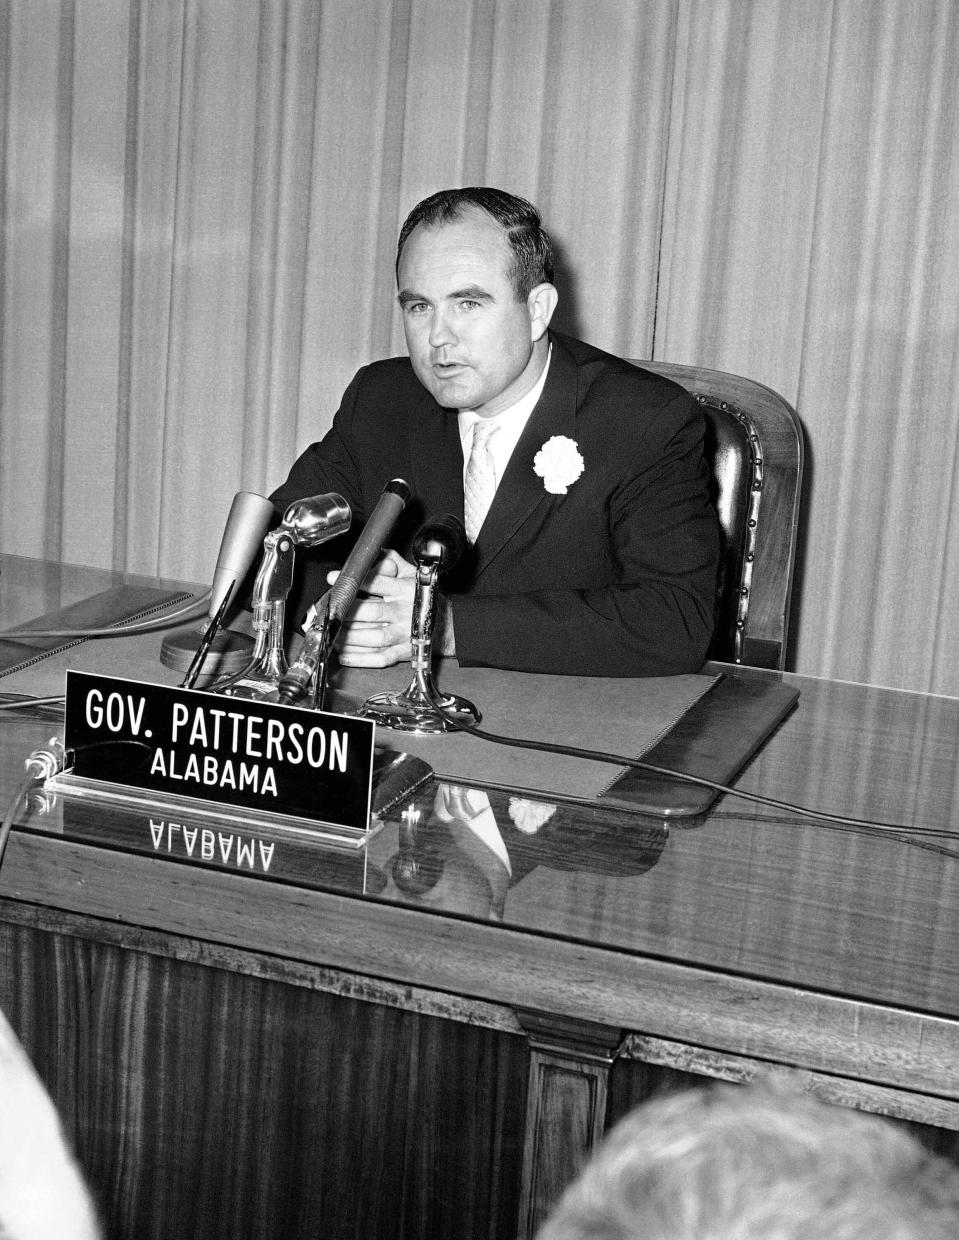 File- This May 23, 2961, file photo shows Alabama Gov. John Patterson telling news conference in Montgomery, Ala., that the federal government is responsible for rioting in the capital city. Patterson, who entered politics as a reformer after his father's assassination but was criticized for failing to protect the Freedom Riders from angry white mobs, has died. He was 99. He died Friday, June 4, 2021, his daughter, Barbara Patterson Scholl confirmed Saturday, June 5, 2021. She said funeral arrangements are pending. (AP Photo/Horace Cort, File )